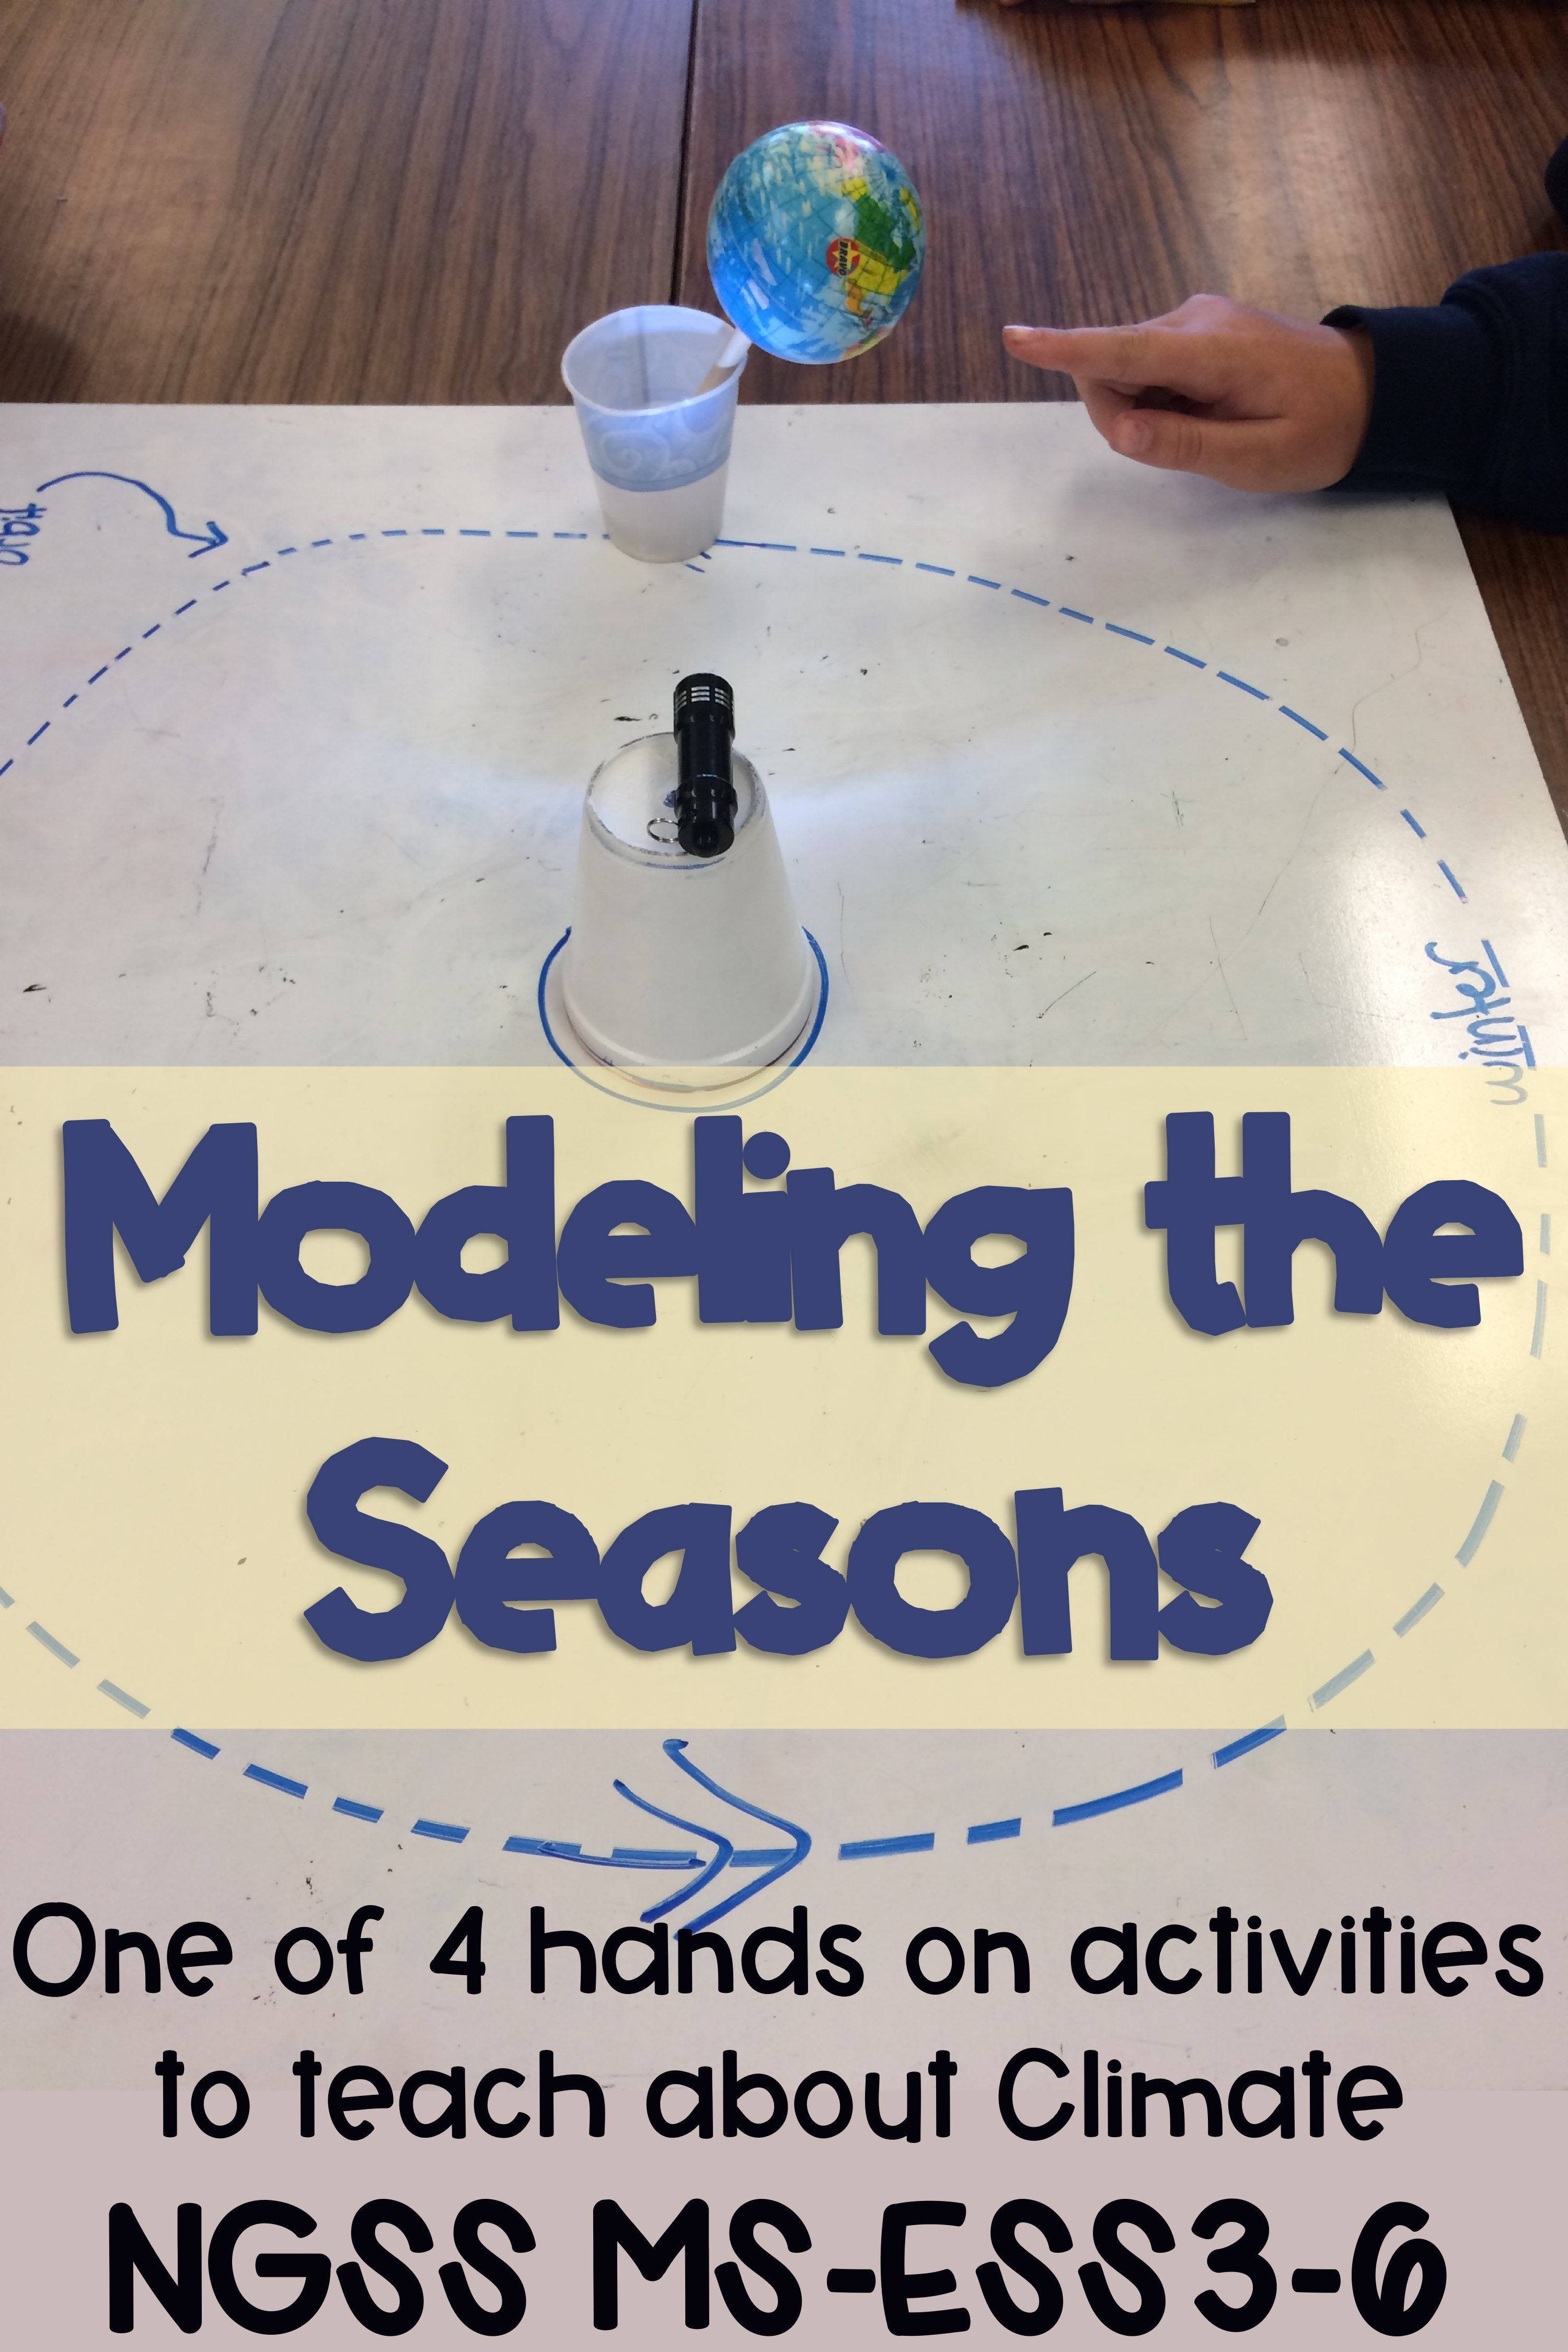 Learn About Climate By Modeling The Seasons One Of 4